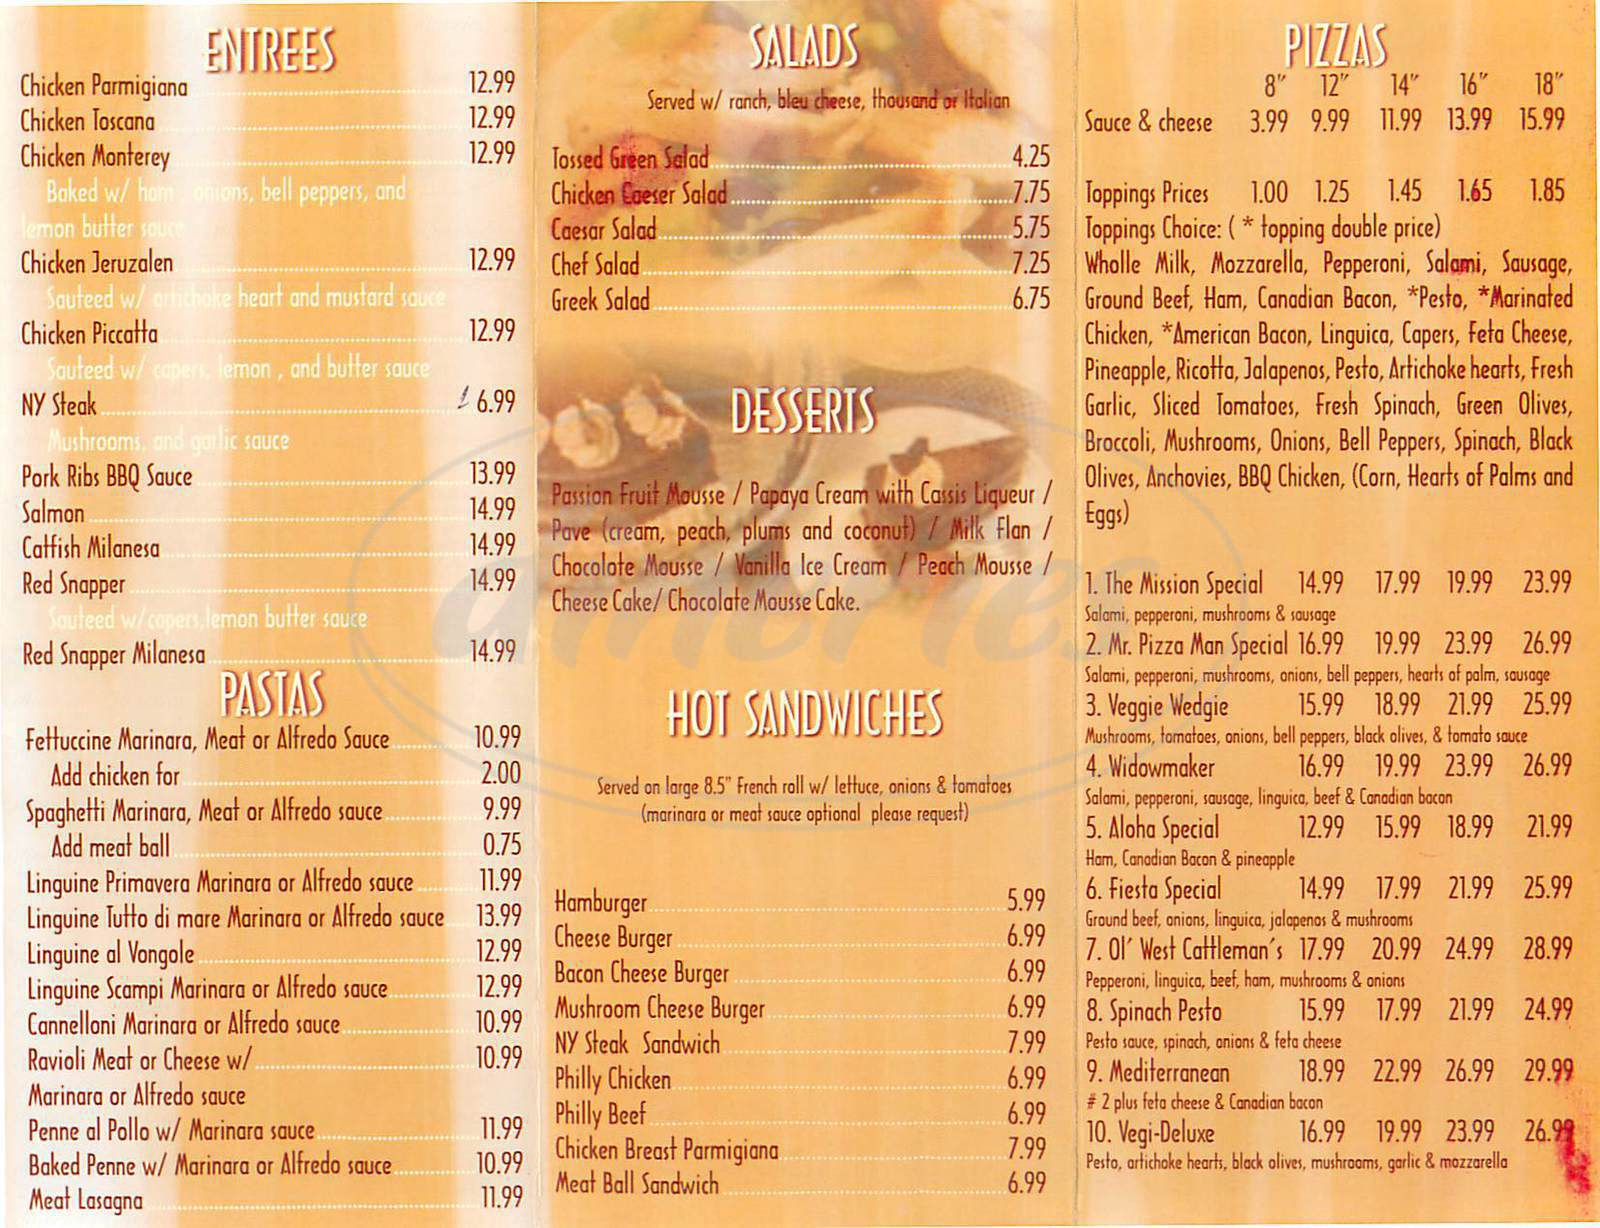 menu for Cleo's Brazilian Steak House